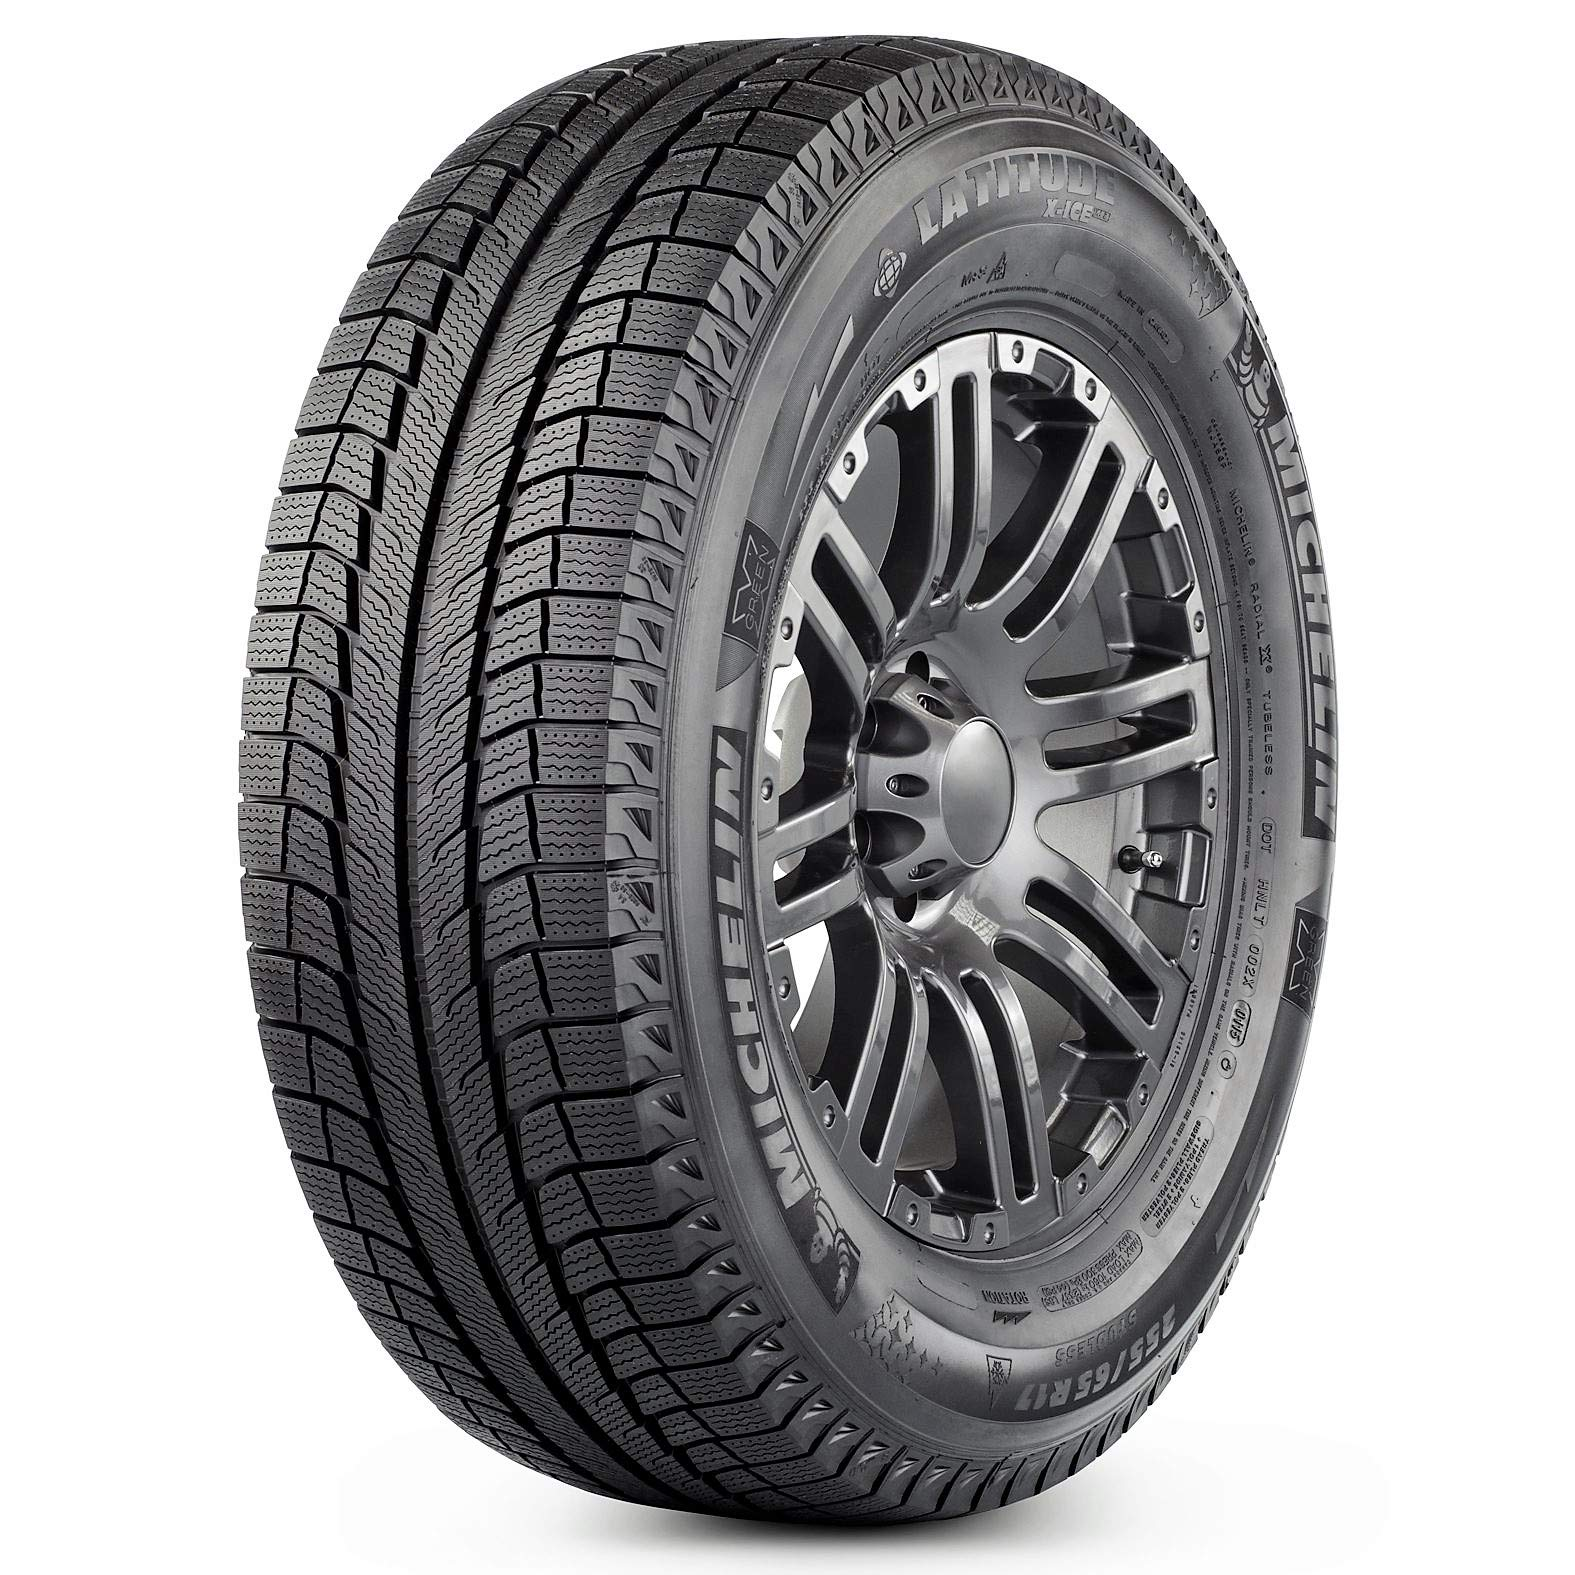 MICHELIN Latitude X-Ice XI2 Performance Winter Radial Tire-235/70R16 106T by MICHELIN